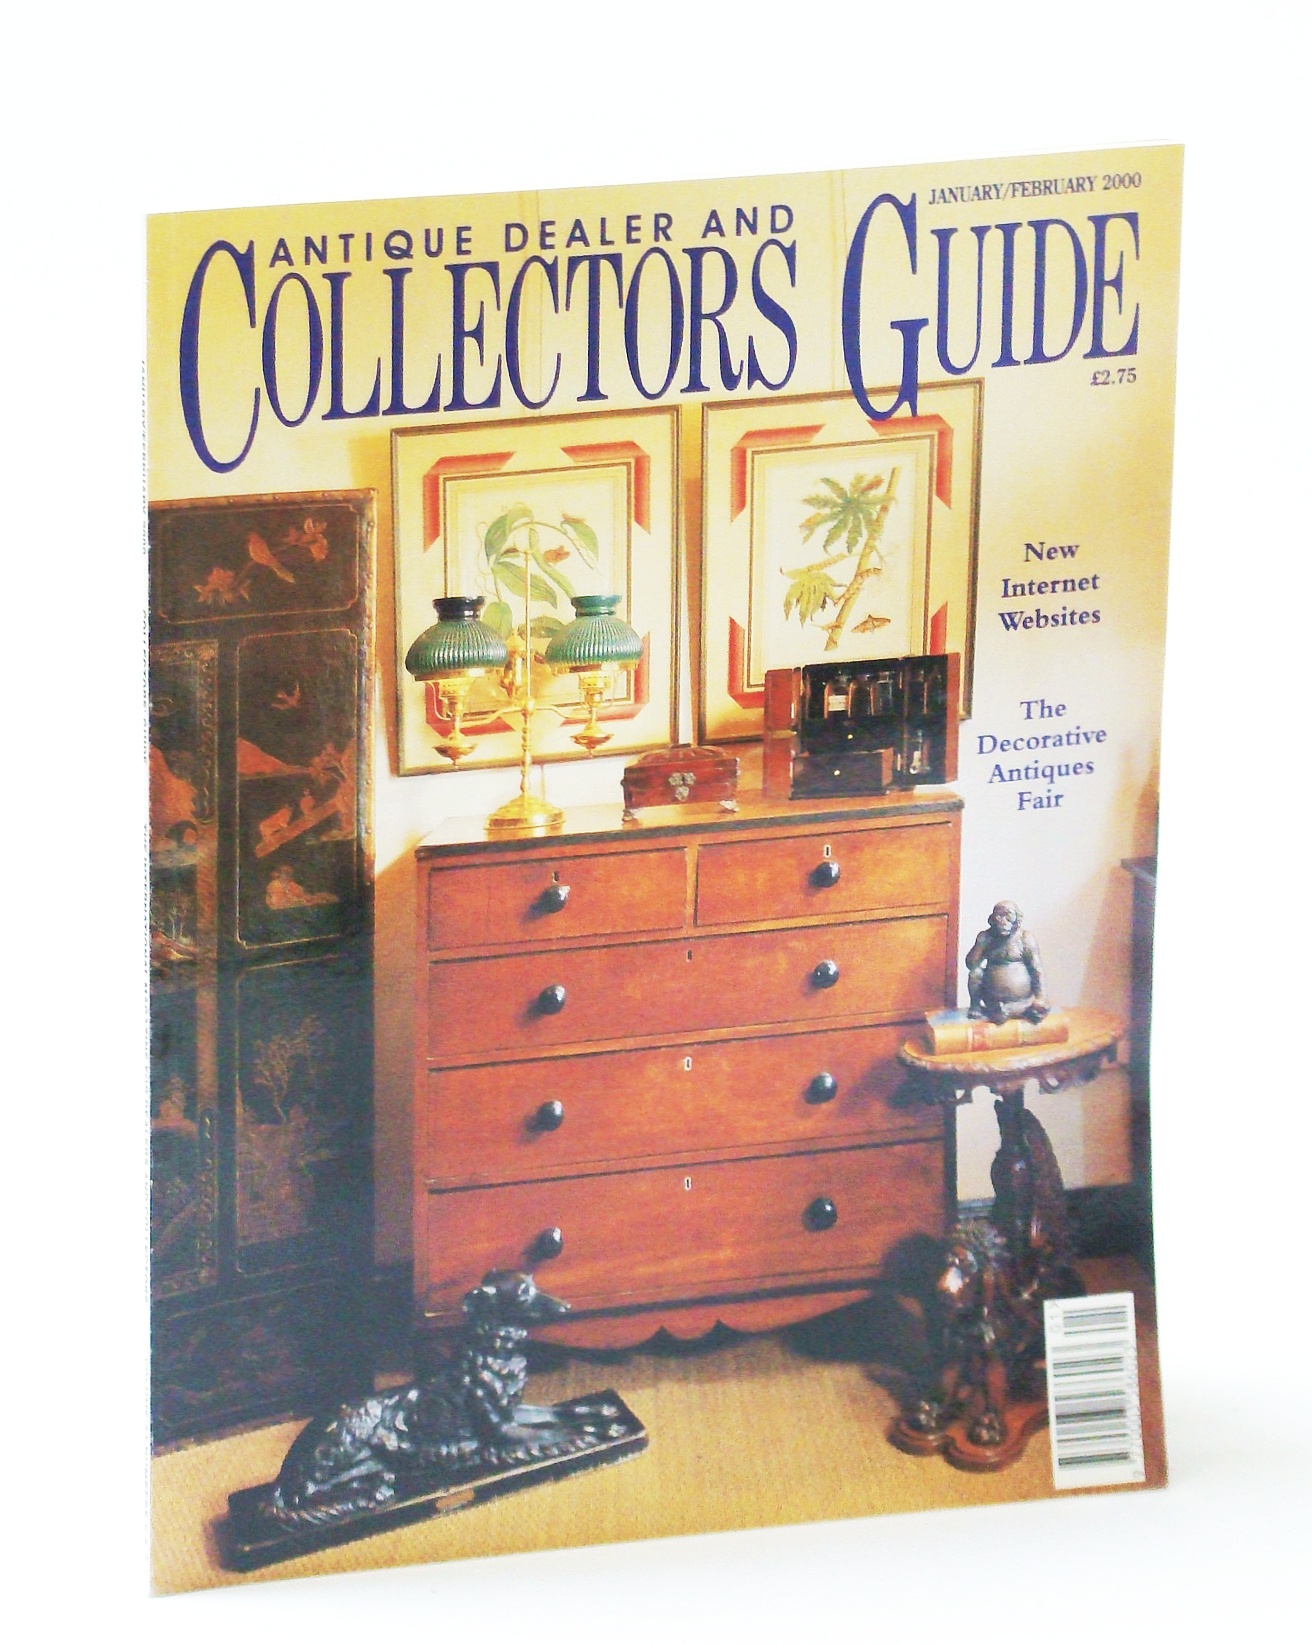 Image for Antique Dealer and Collectors Guide Magazine, January / February (Jan. / Feb.) 2000 - Richard Hilliard (1519-1594), Part II